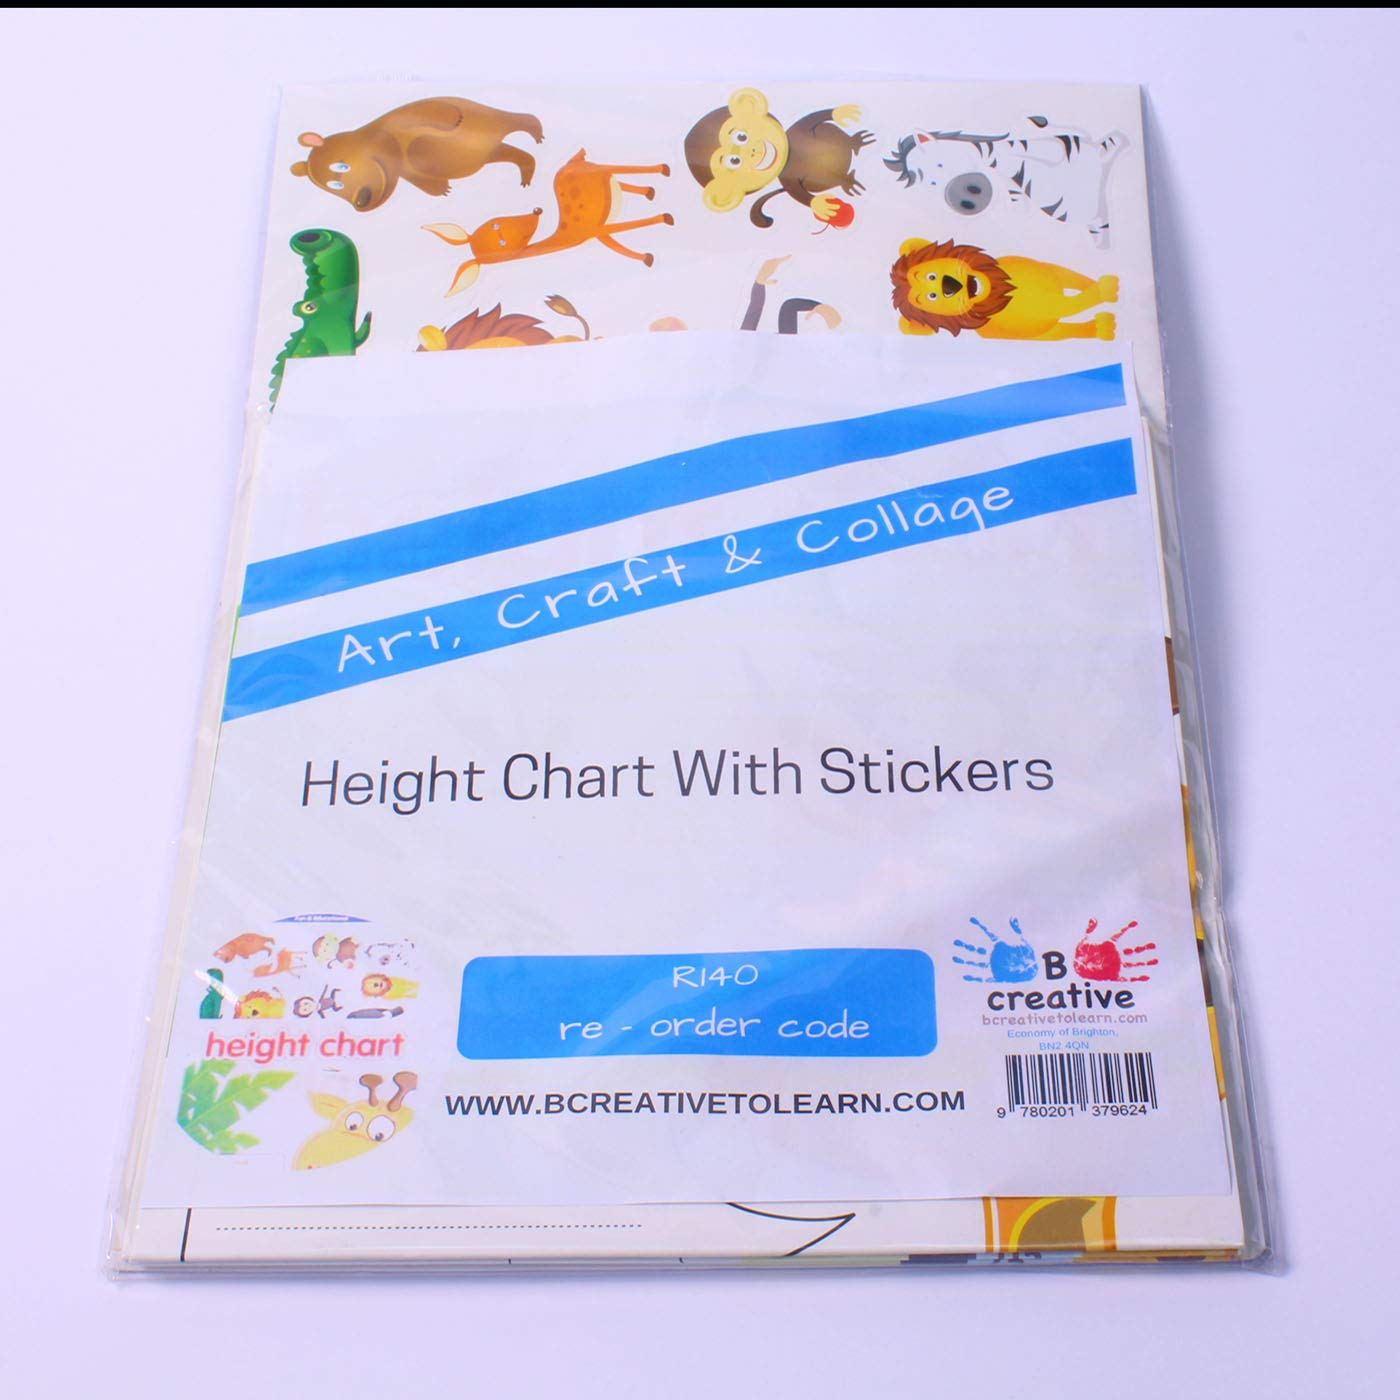 BCreativetolearn Childrens Height Chart with over 40 Stickers